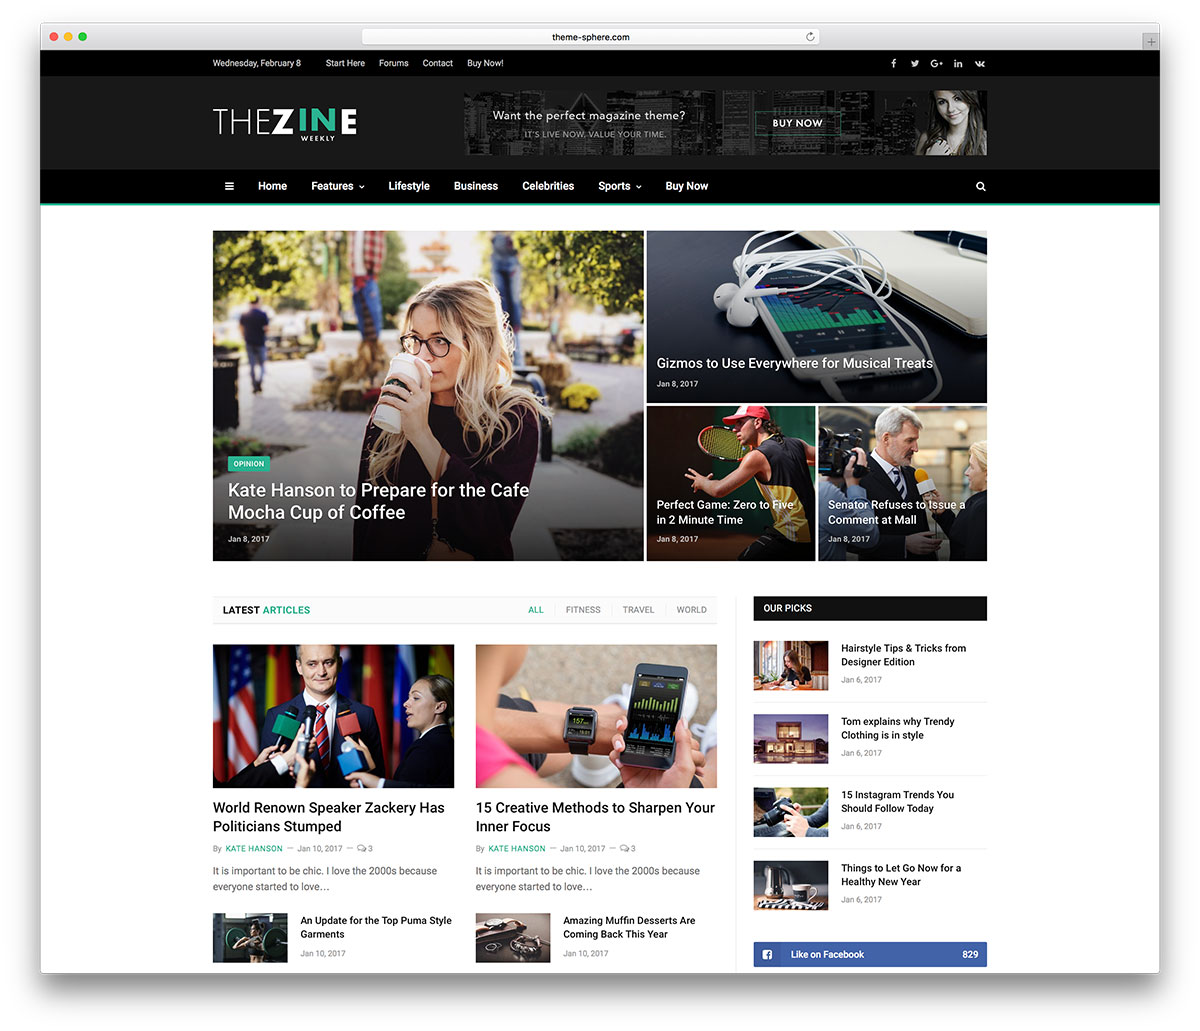 61700373886aa 36 Best WordPress Newspaper Themes for News Sites 2019 - Colorlib